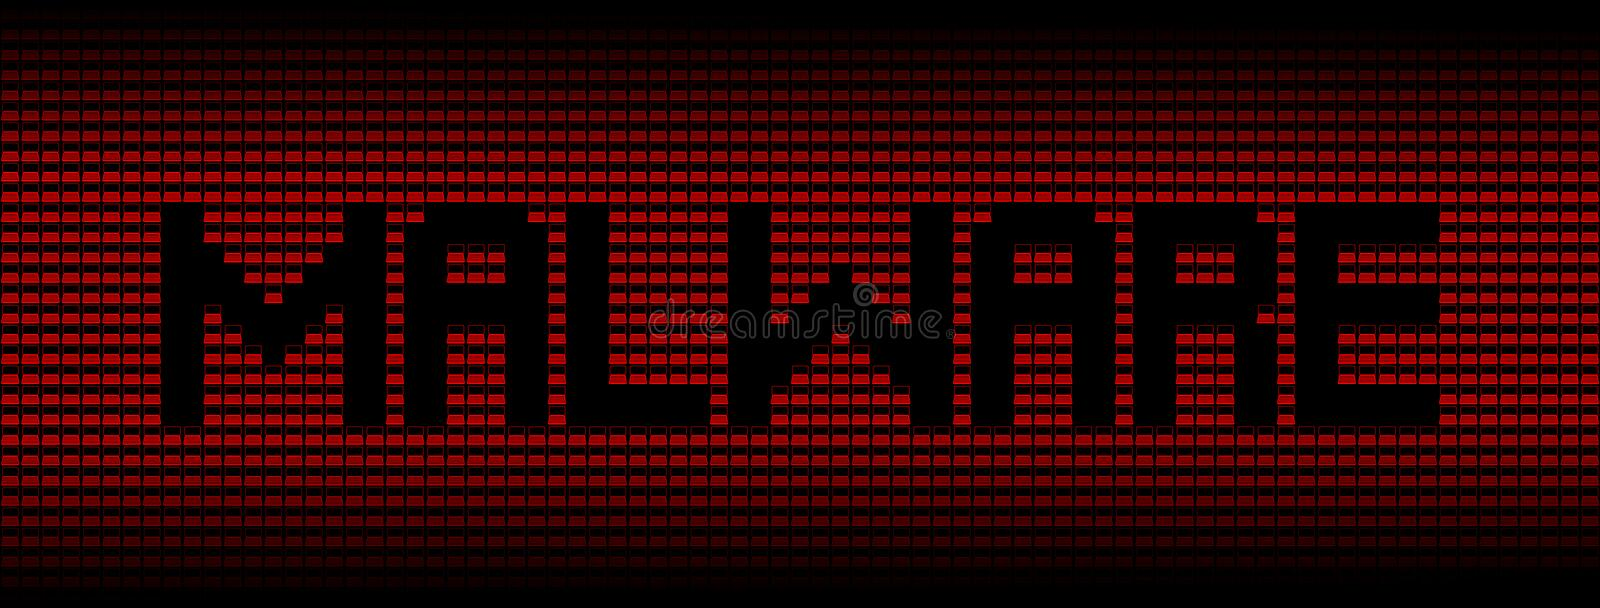 Malware text on red laptops background illustration royalty free illustration